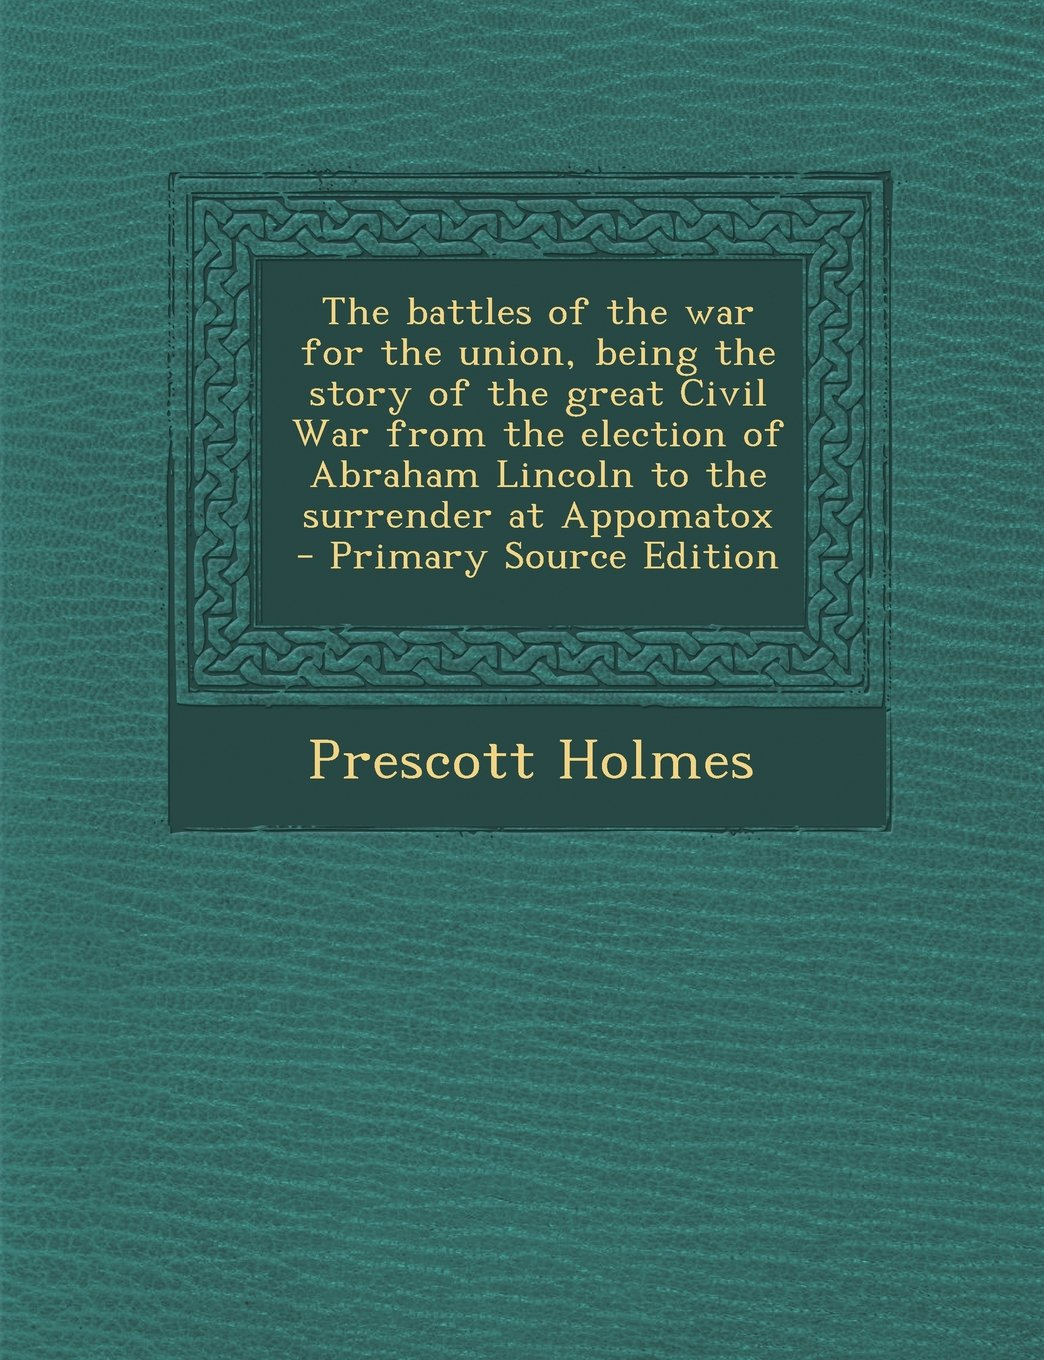 The battles of the war for the union, being the story of the great Civil War from the election of Abraham Lincoln to the surrender at Appomatox PDF